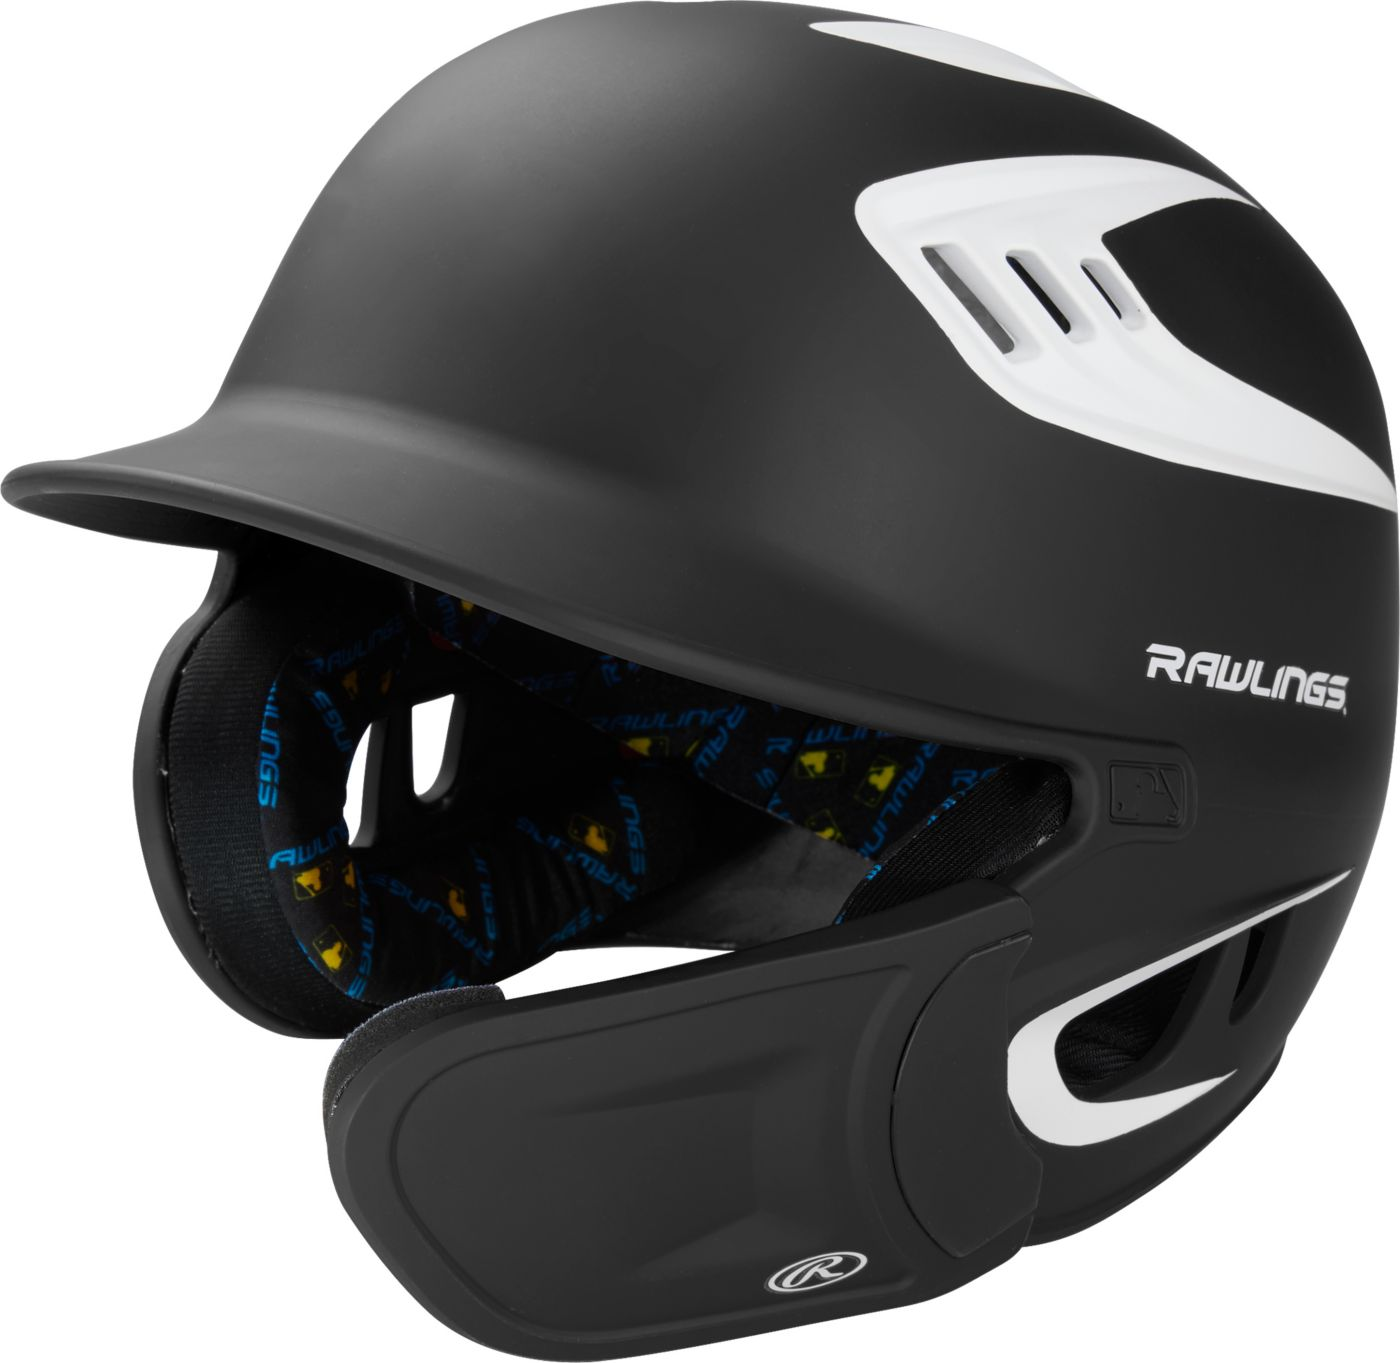 Rawlings Senior VELO Matte Batting Helmet w/ Extended Jaw Guard